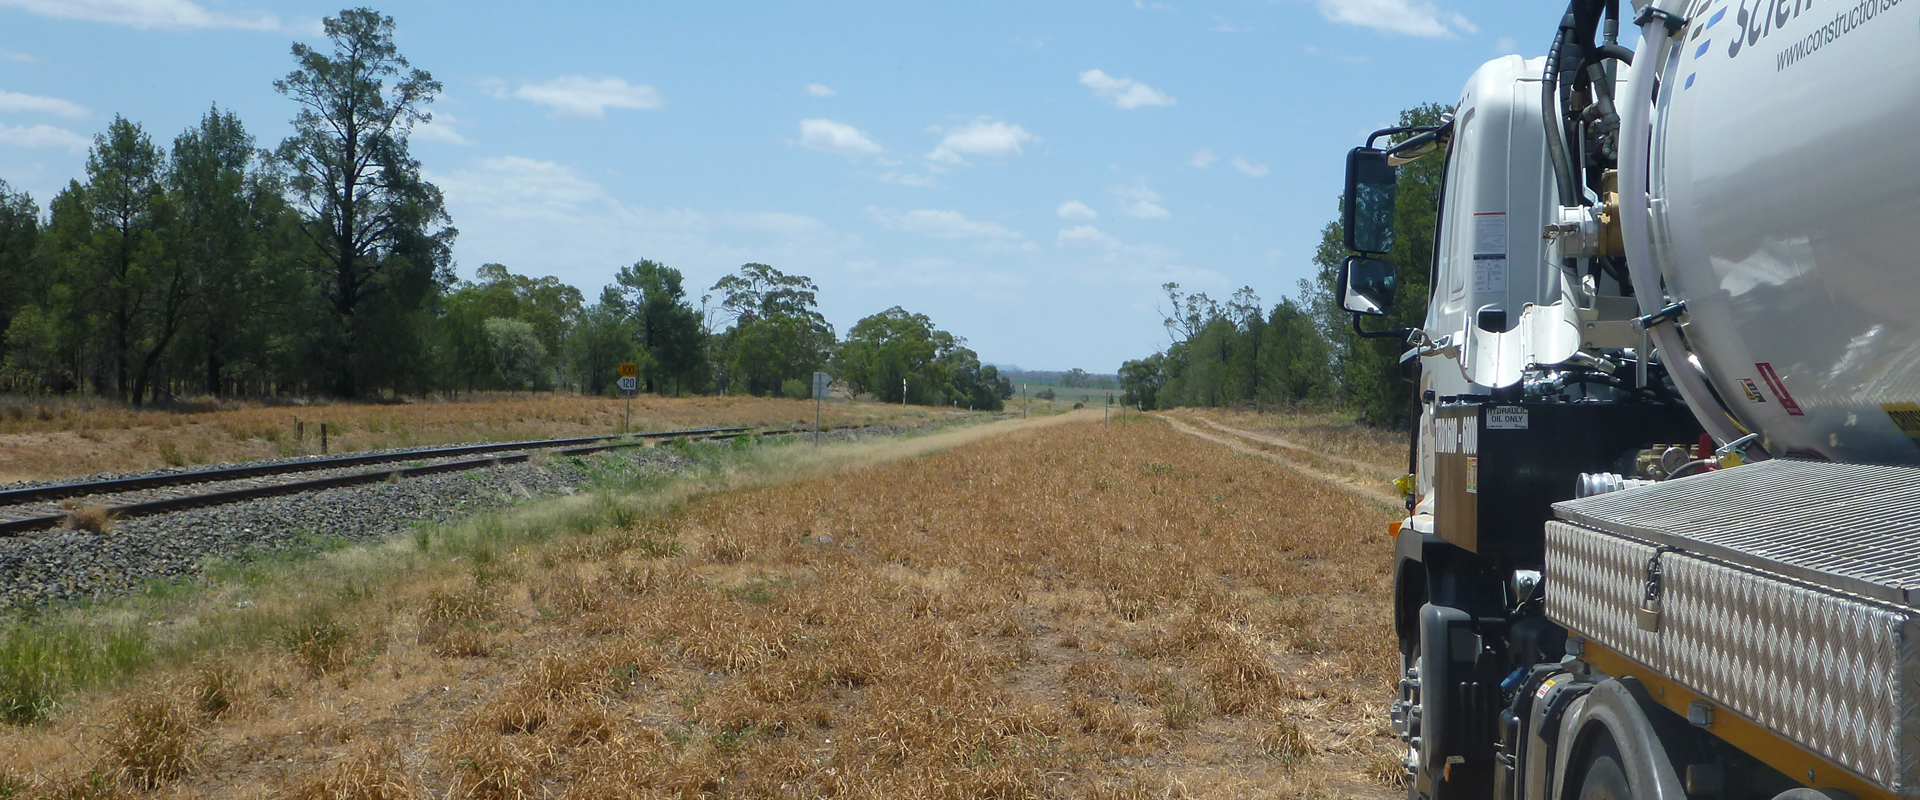 a construction sciences project inland rail